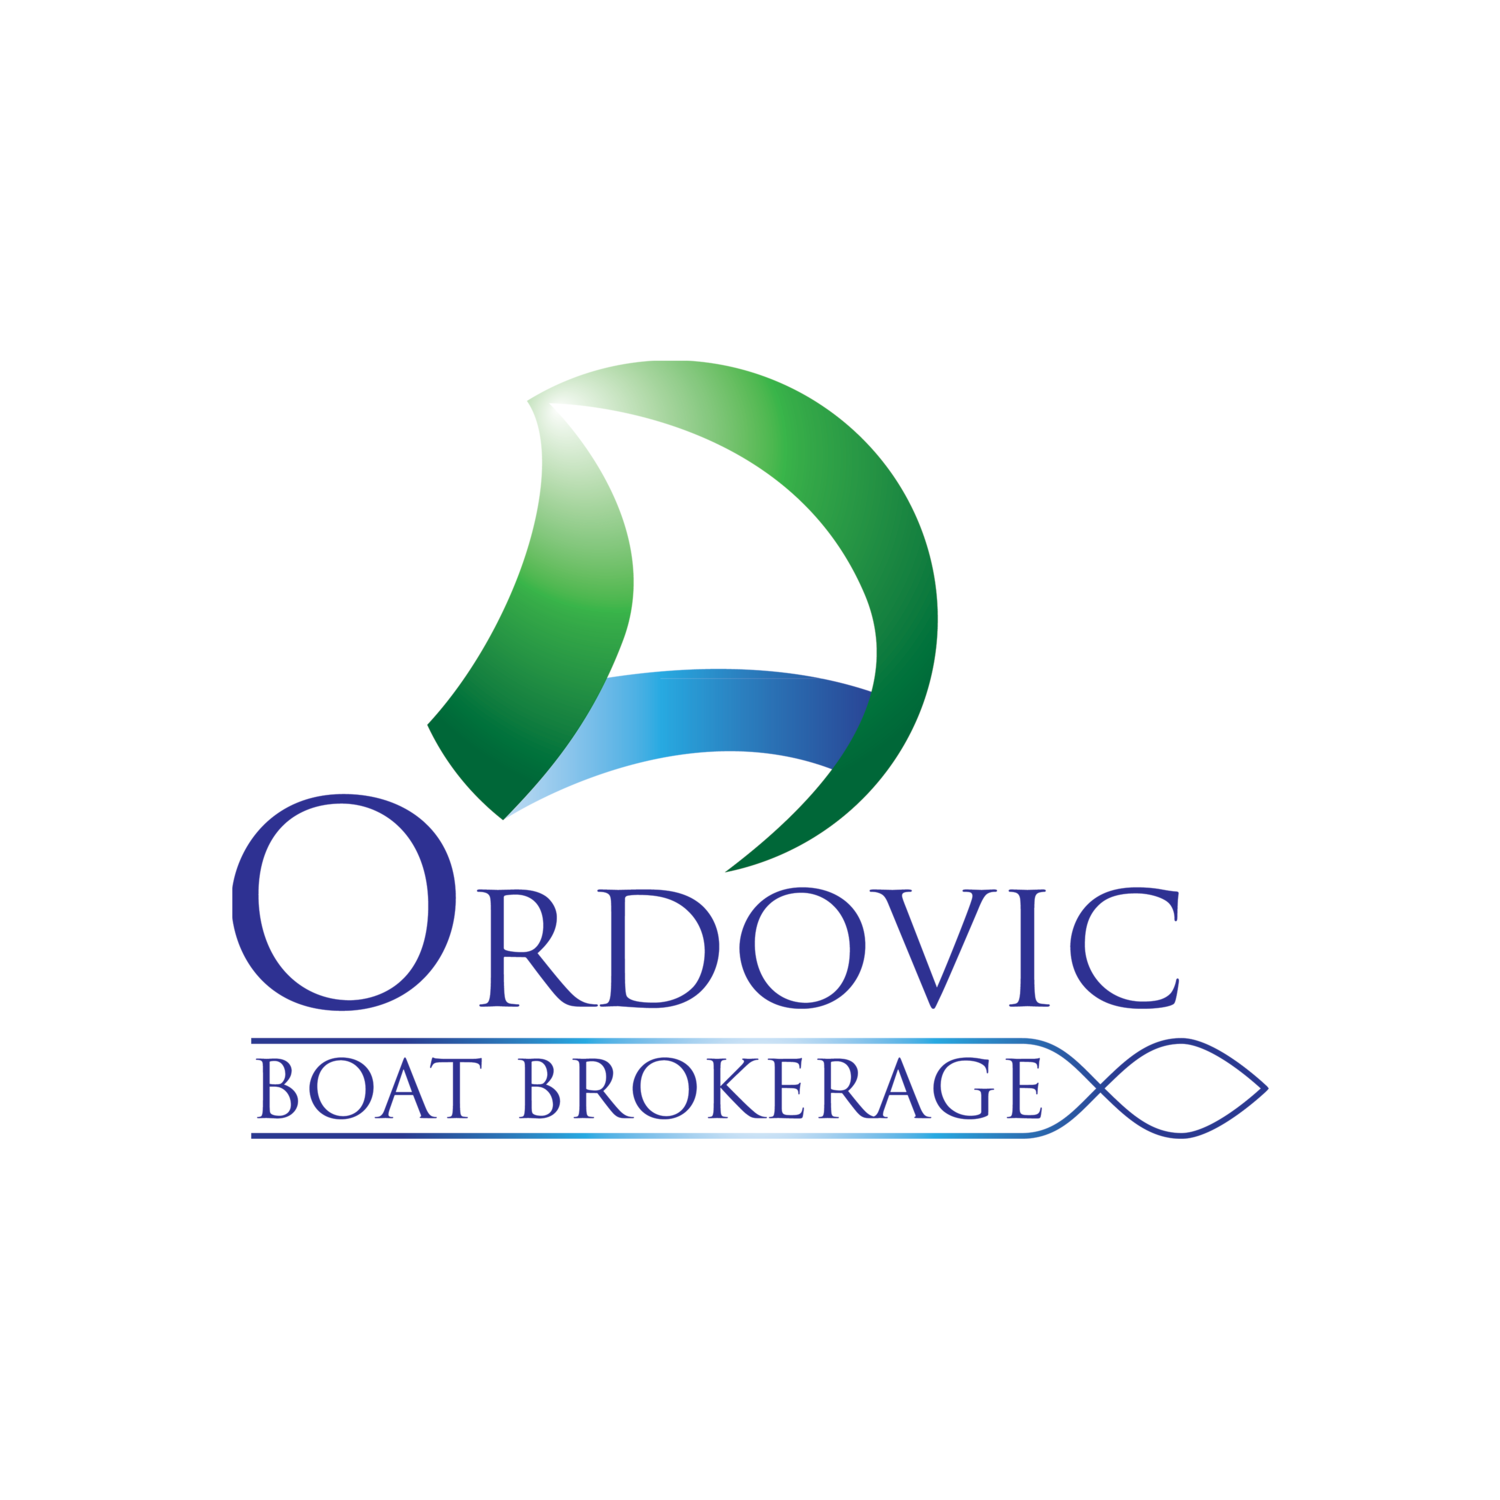 ordovic boat brokerage | boat brokerage north wales | boat brokerage UK